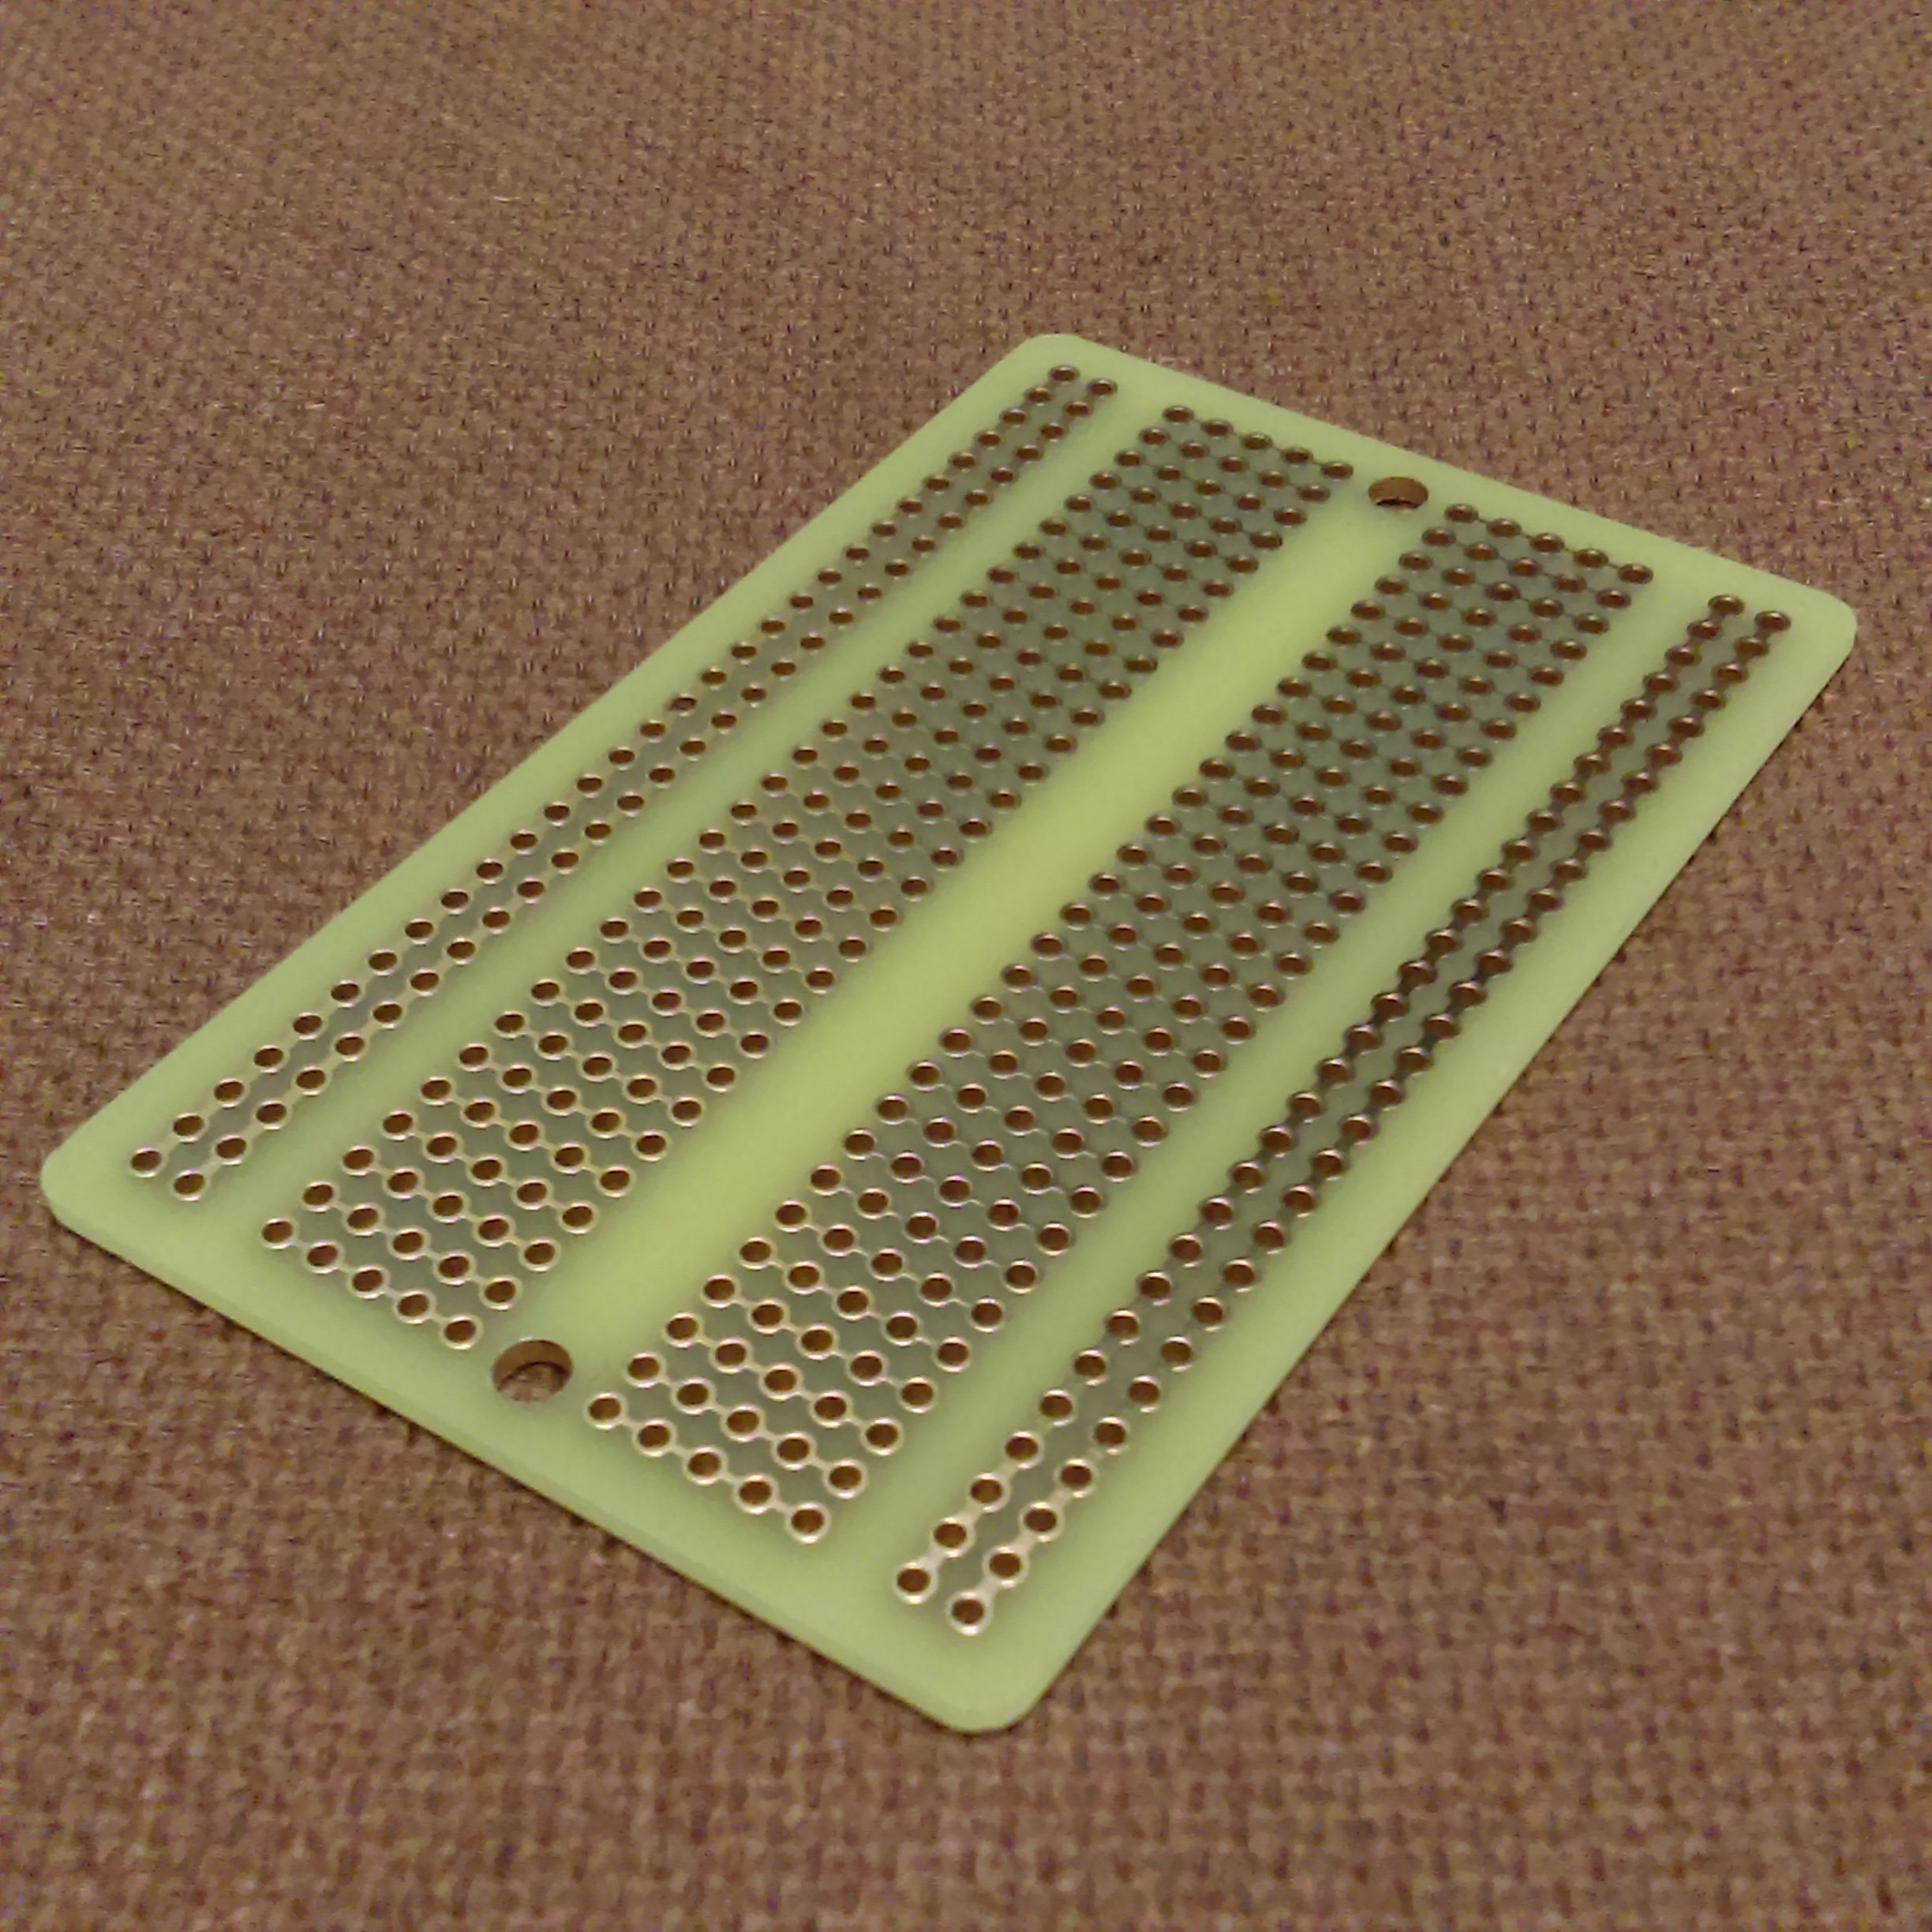 Perf Board 3 2 X 2 Inches Moneks Technologies